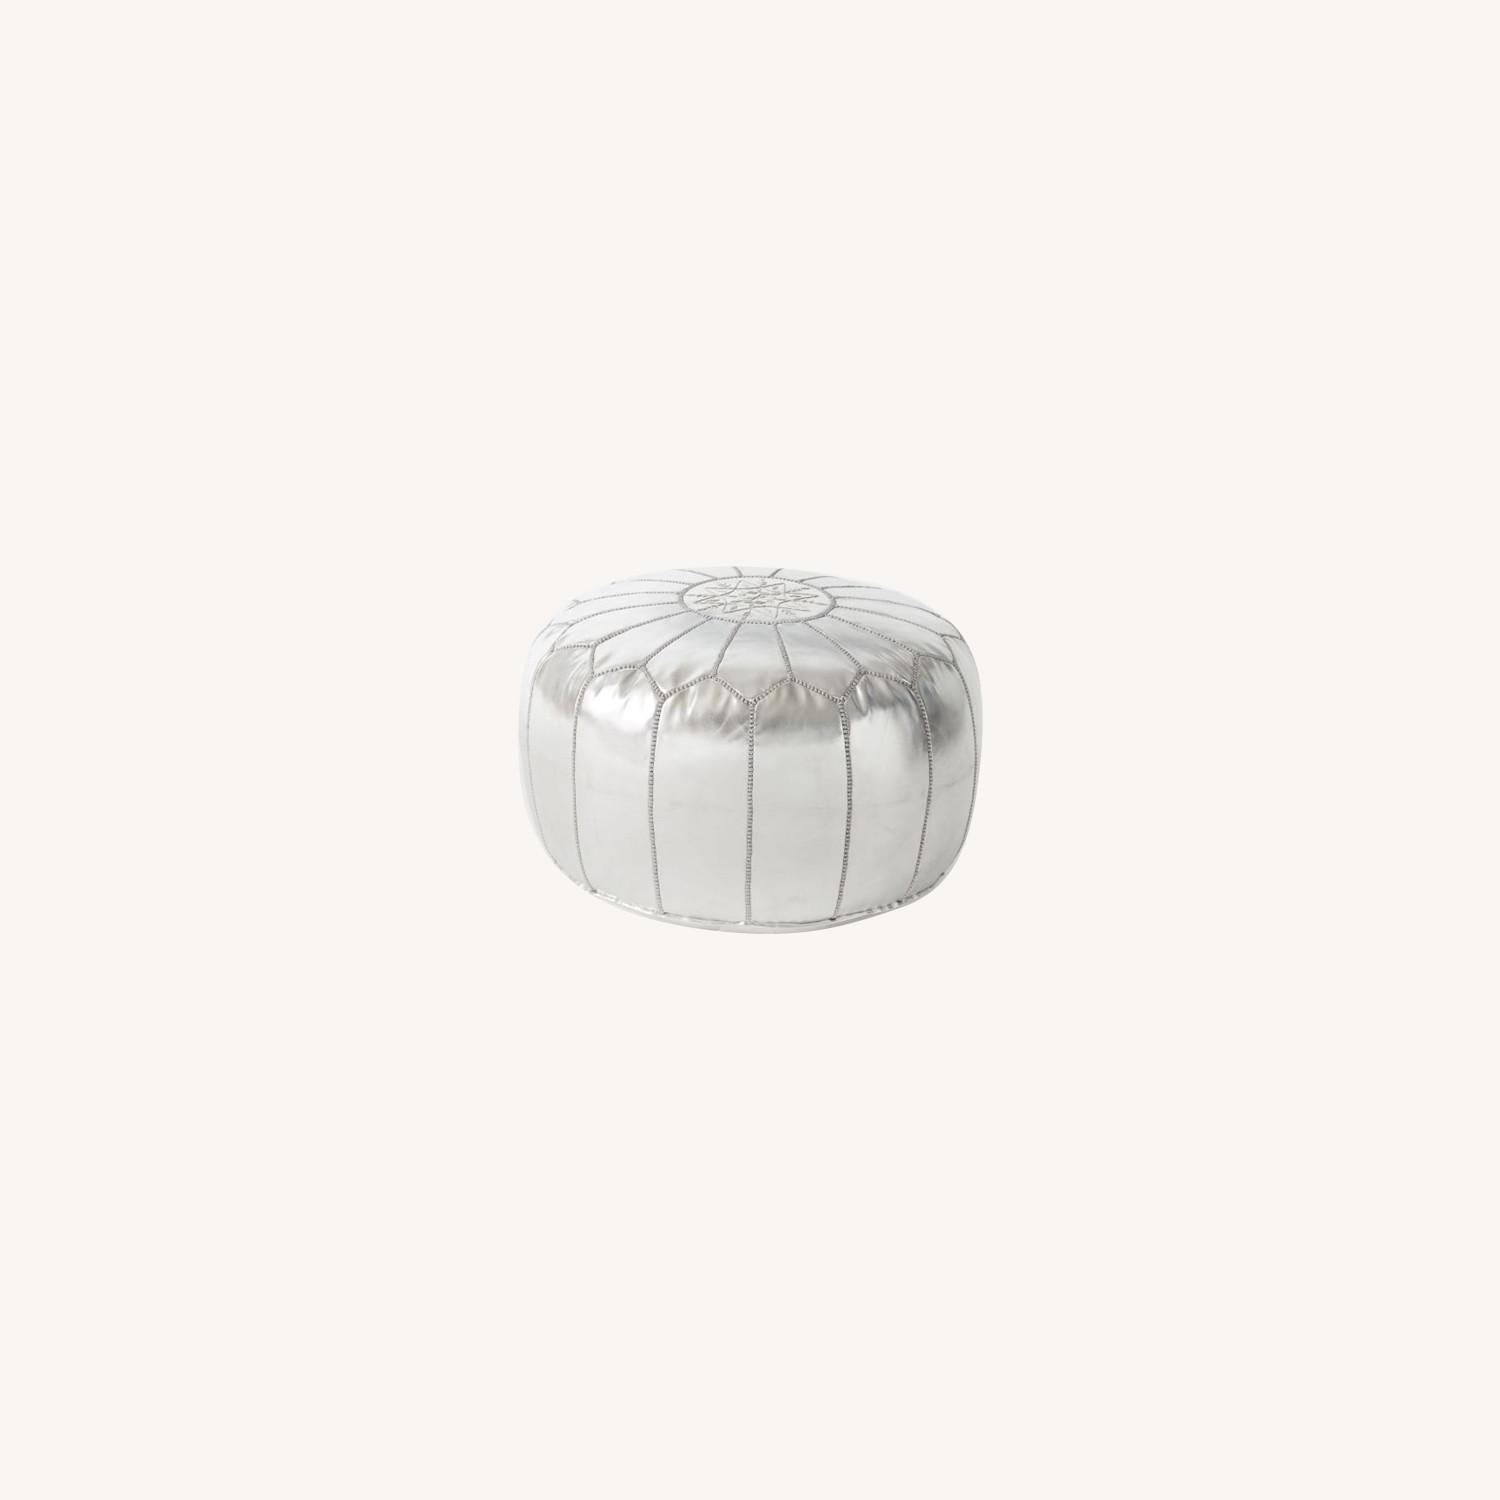 West Elm Leather Moroccan Pouf, Silver - image-4